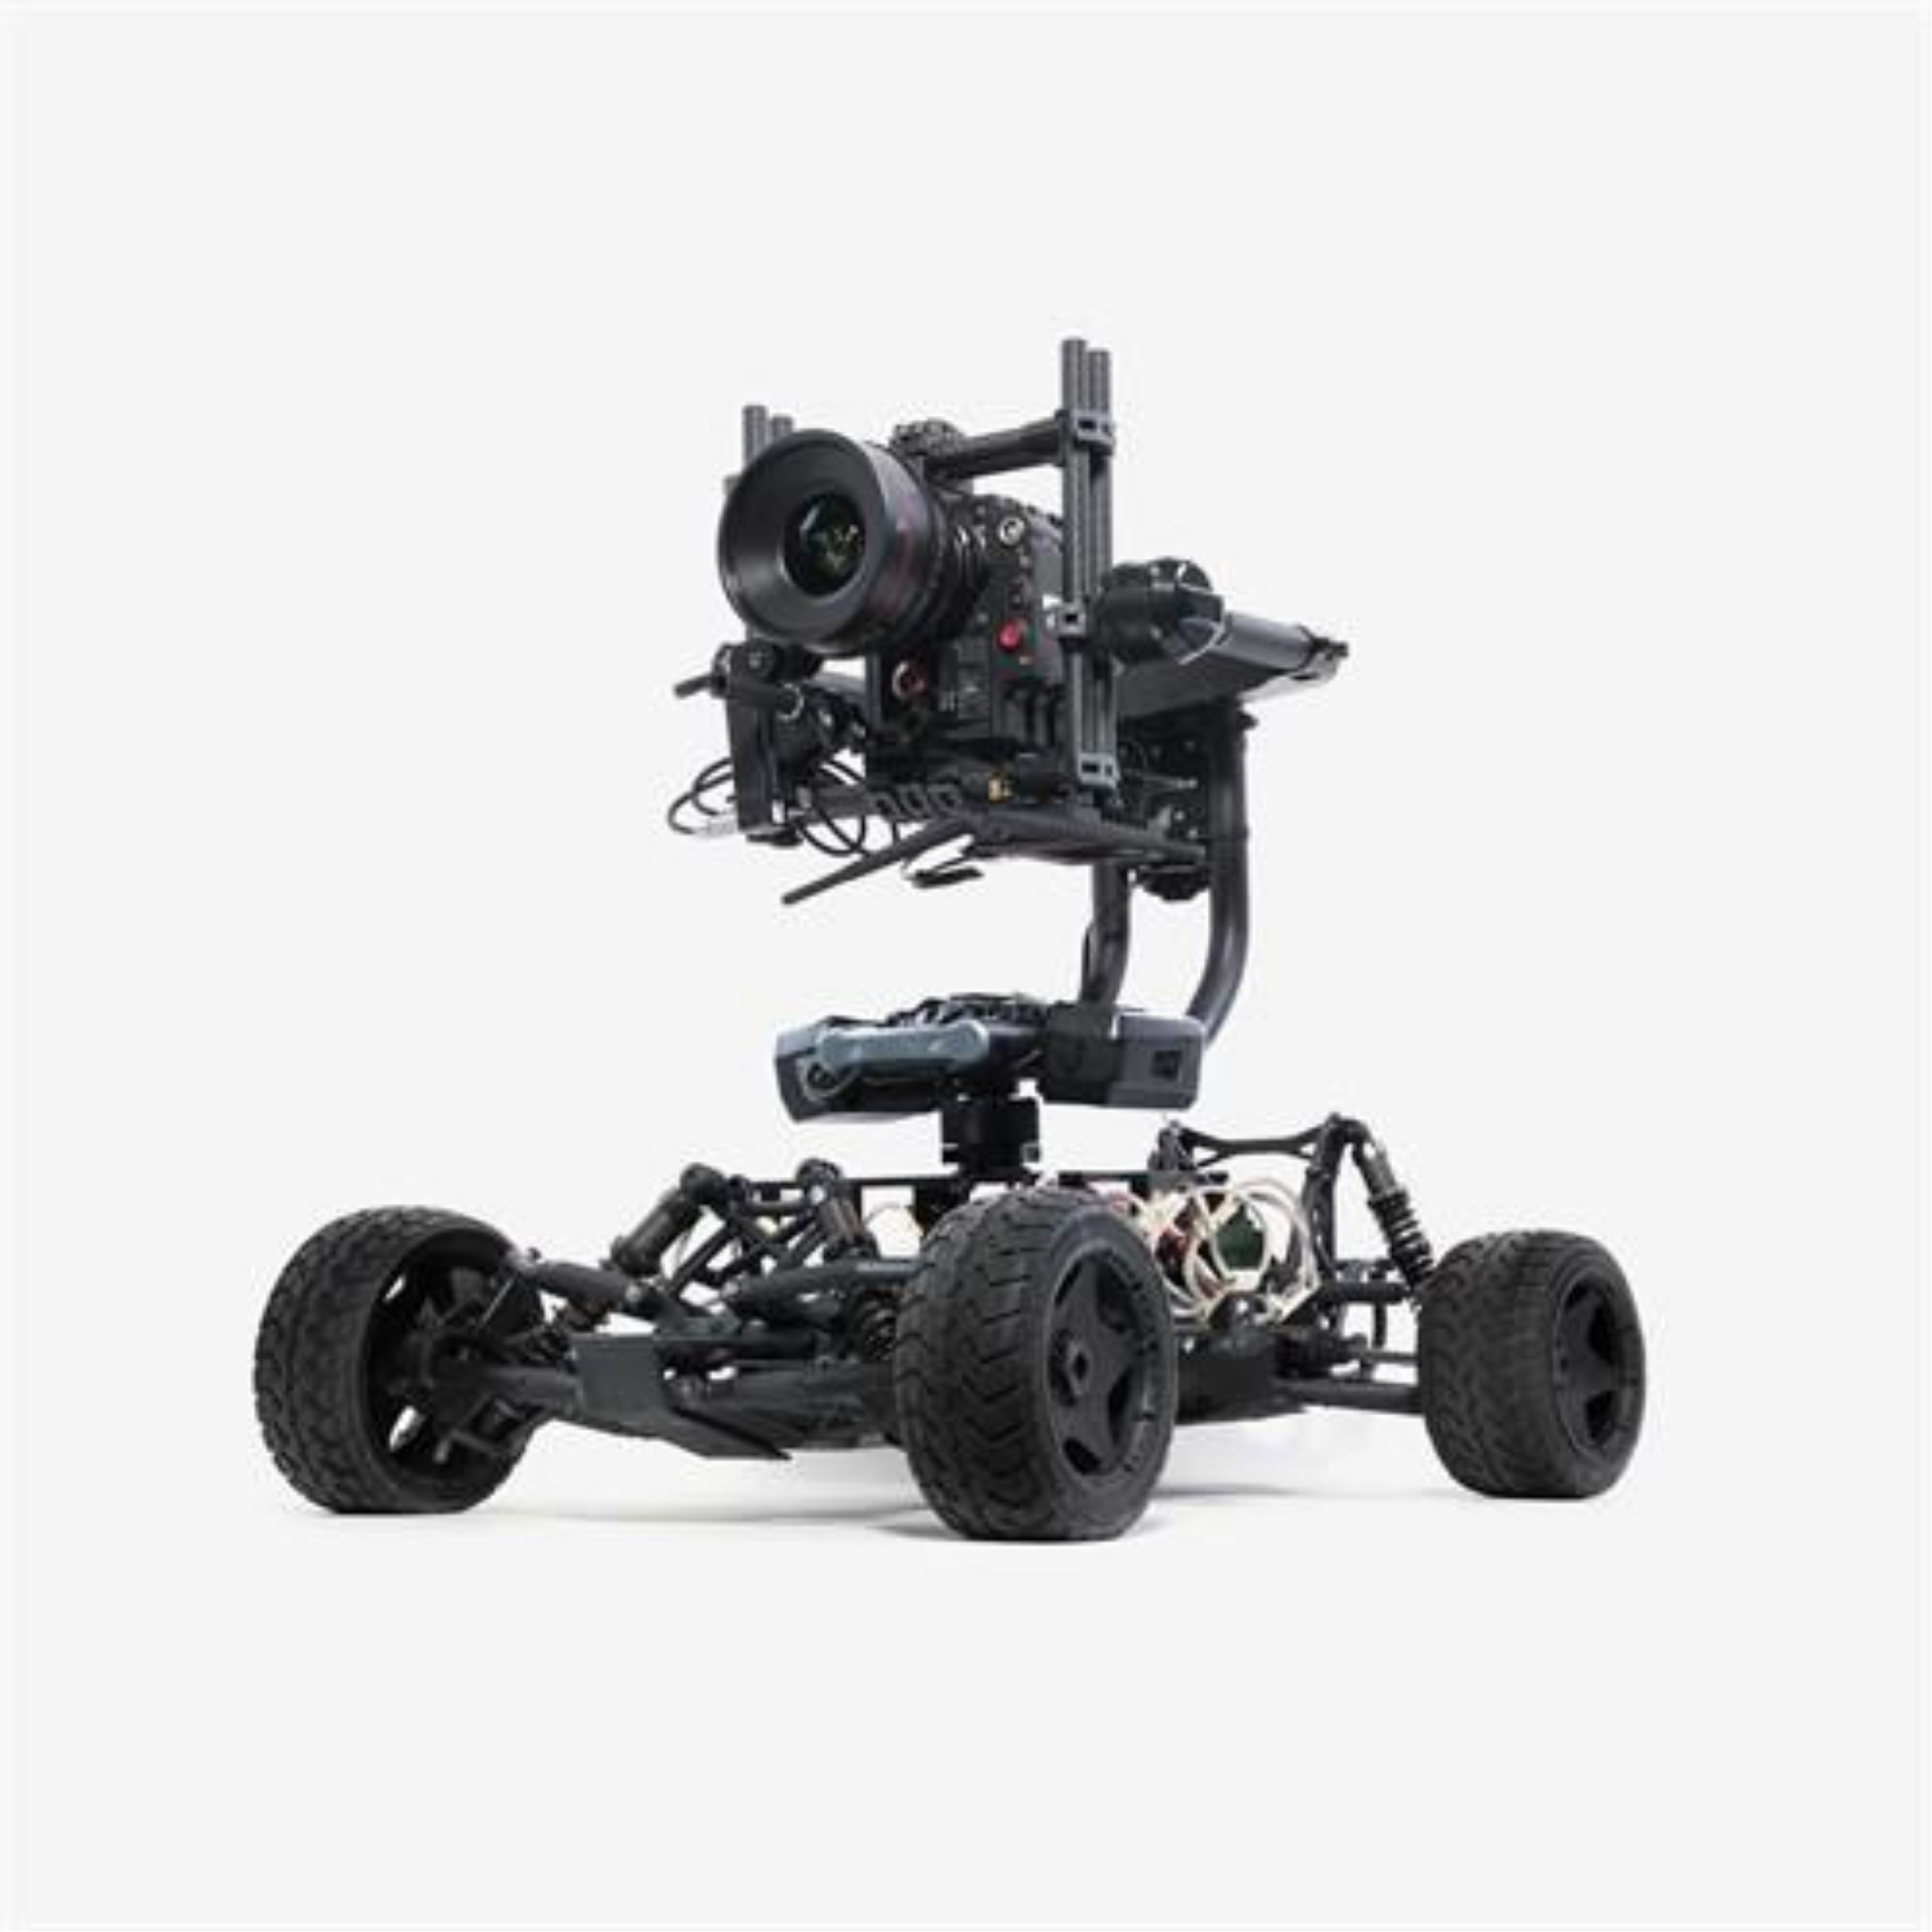 Freefly Tero RC with Red Weapon Camera